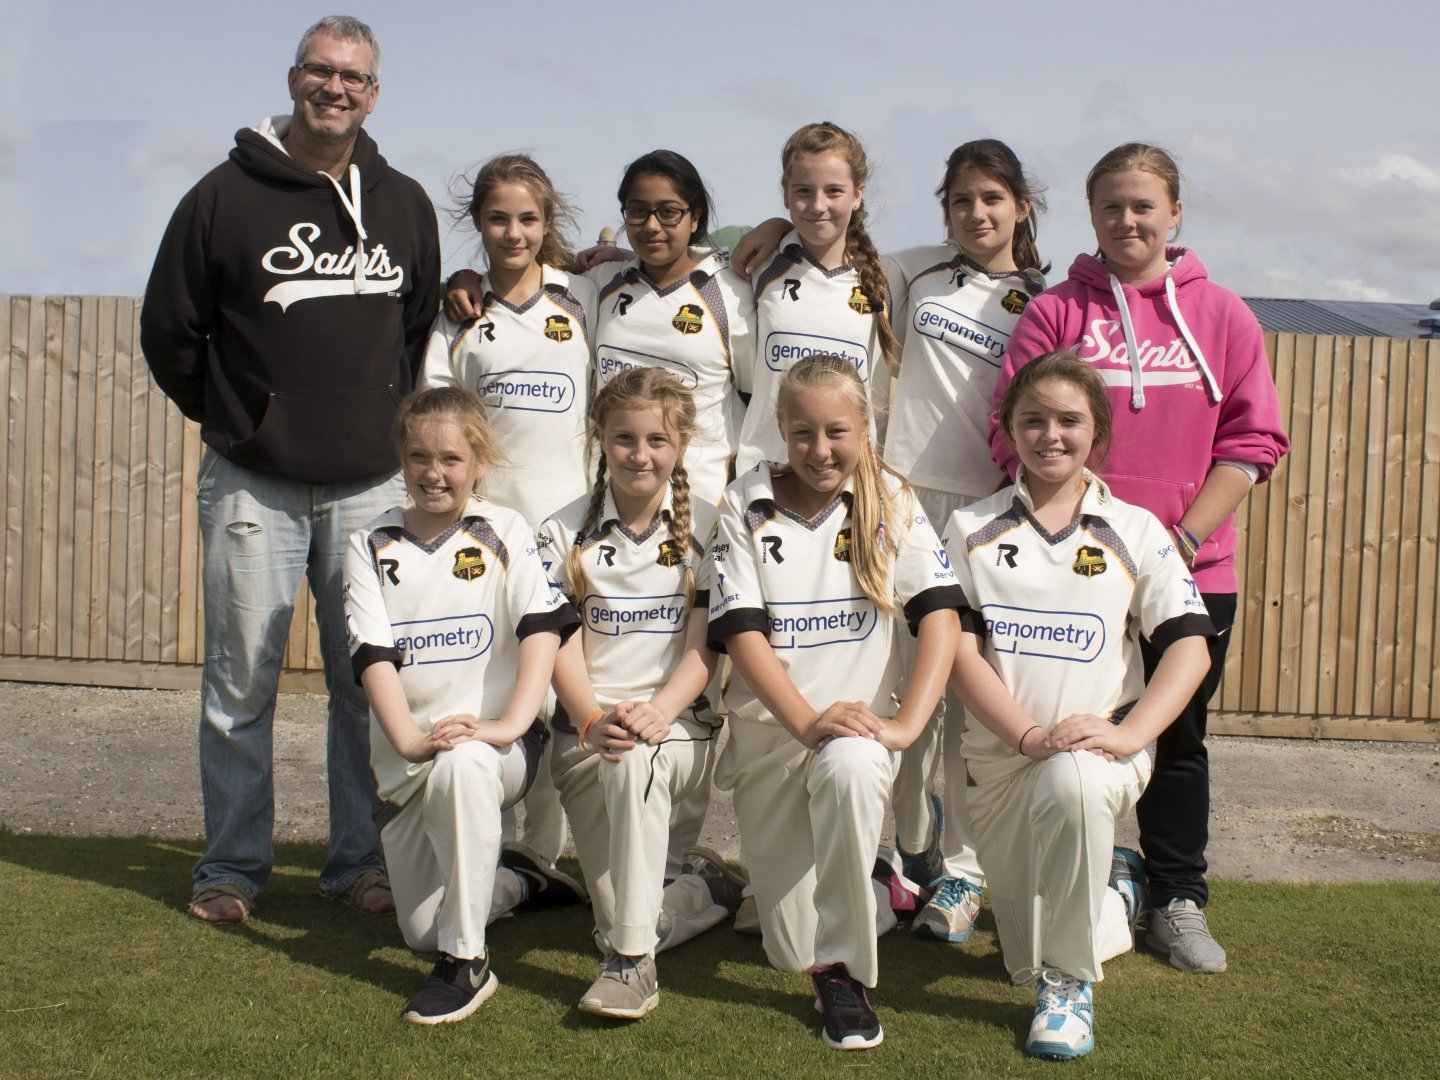 Pudsey St Lawrence girls team